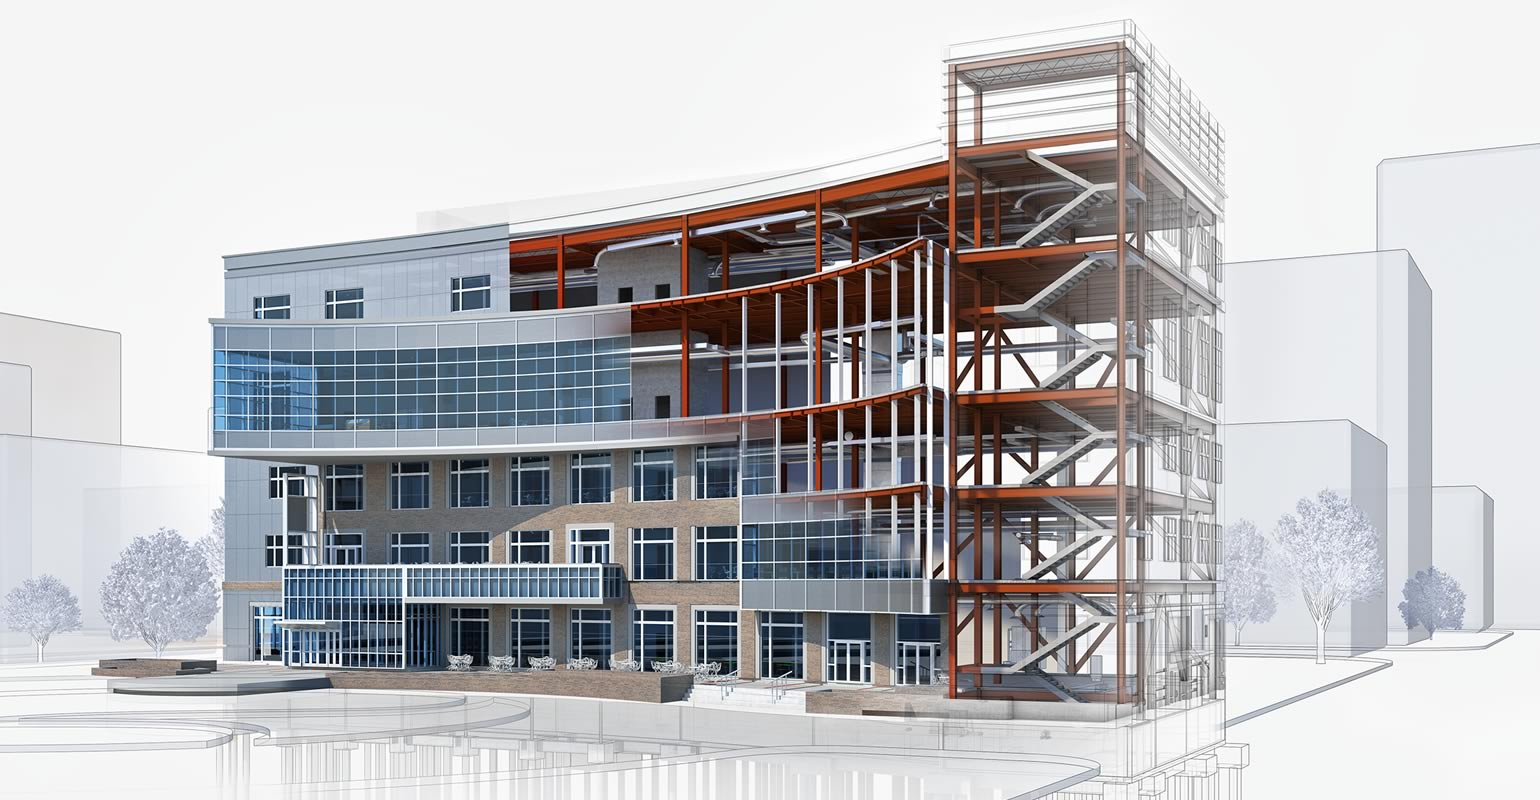 Revit family bim software autodesk for Building design courses